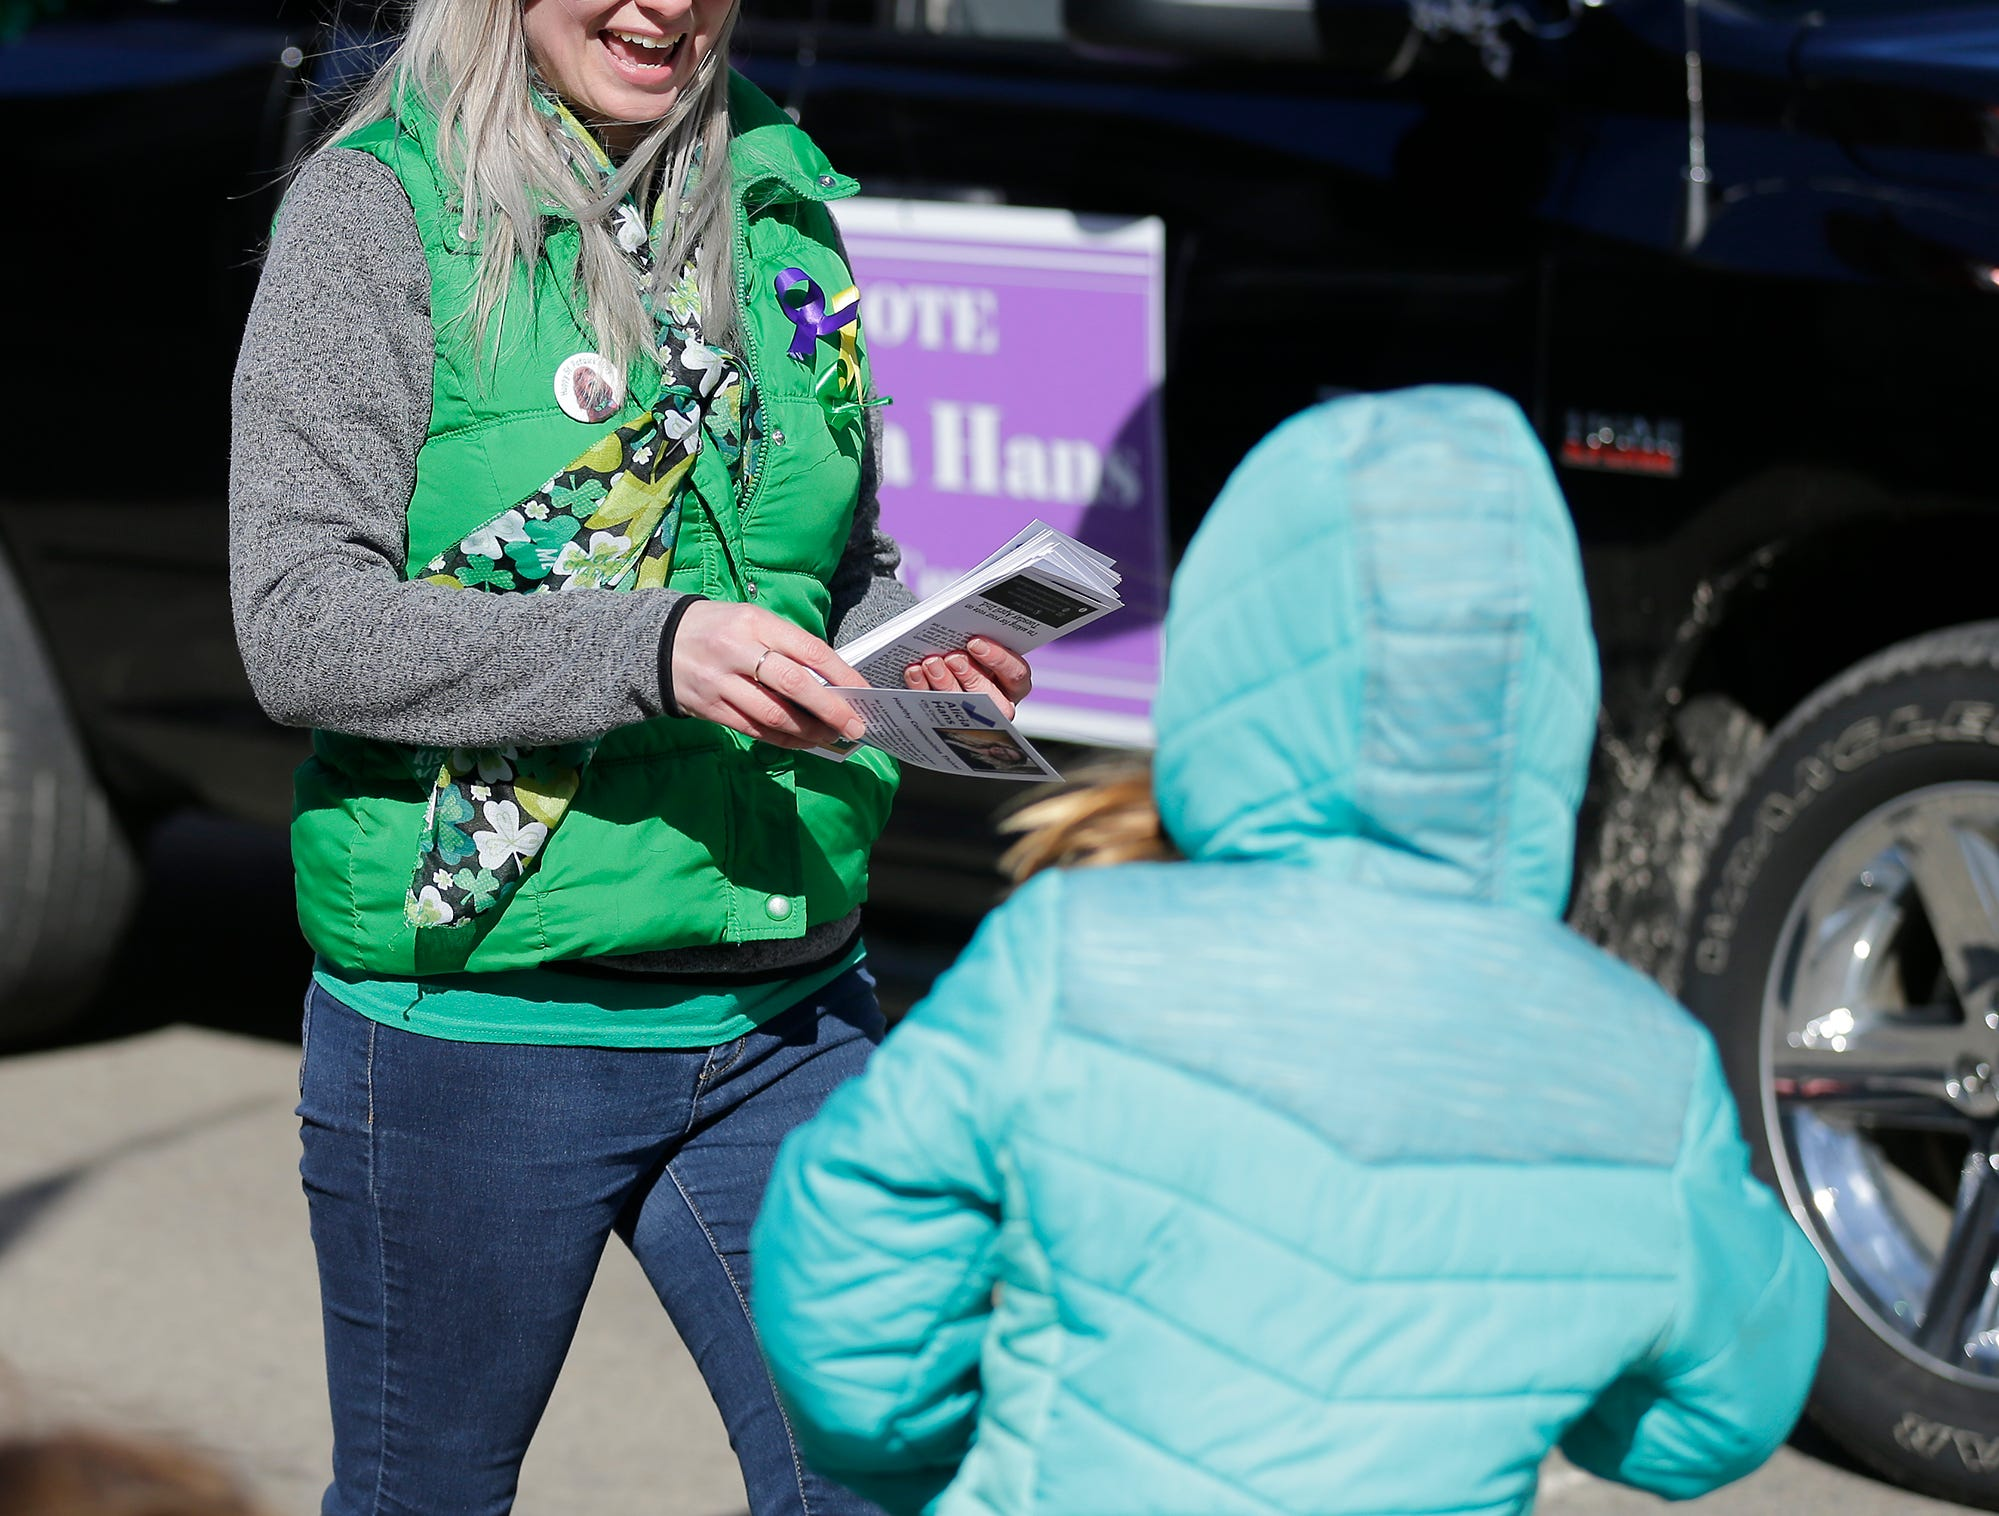 Alicia Hans hands out flyers for her city council candidacy in the City of Fond du Lac St. Patrick's Day Parade Saturday, March 16, 2019 on Main Street in downtown Fond du Lac. Hundreds of people lined the street to watch over 50 parade participants. Doug Raflik/USA TODAY NETWORK-Wisconsin